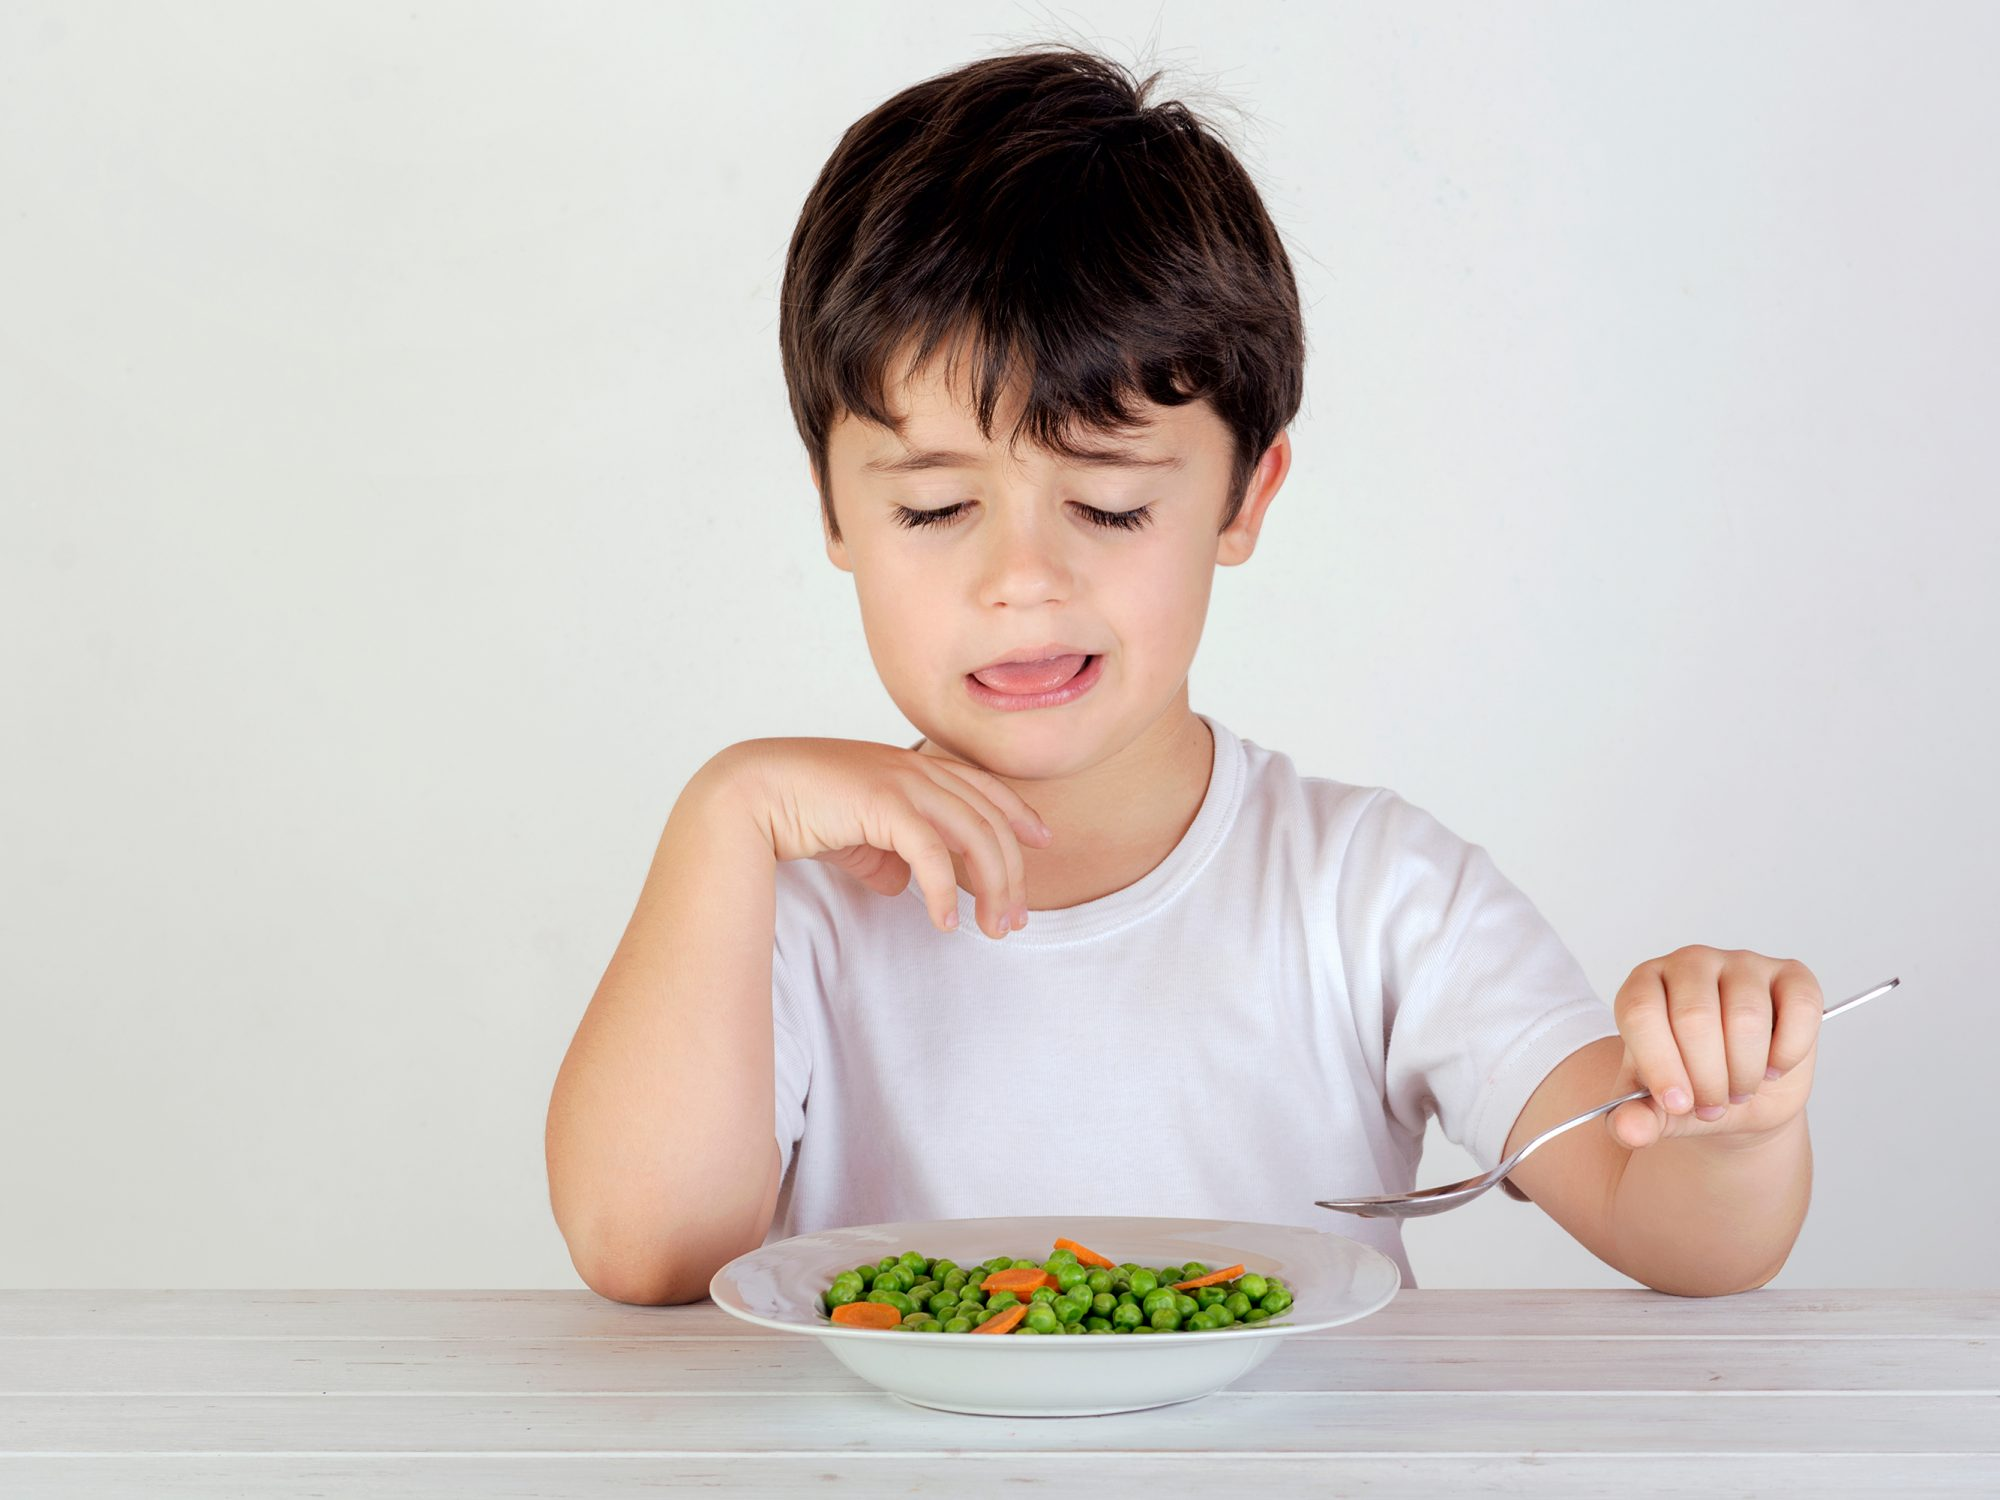 New Study Explains How to Get Picky Eaters to Clean Their Plates